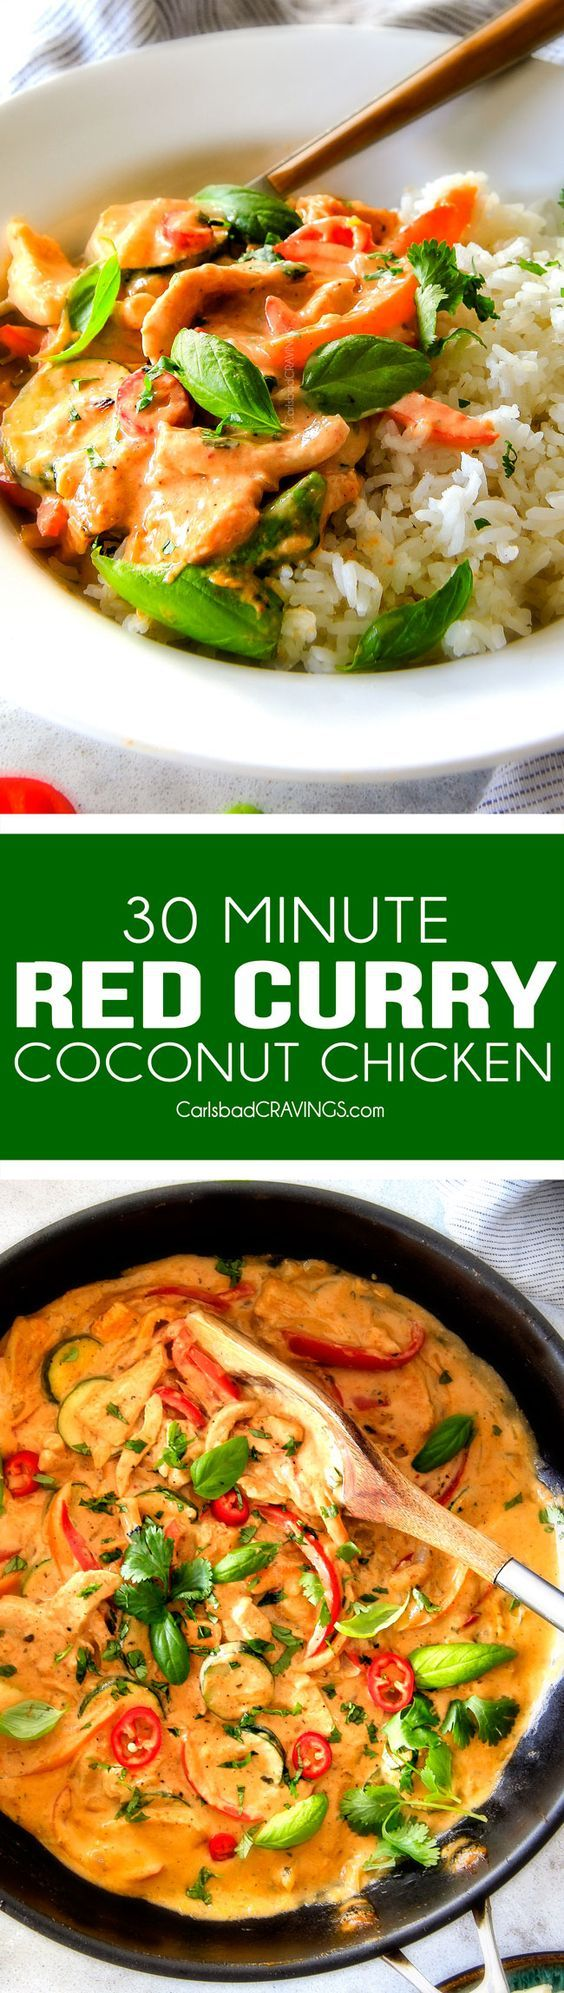 This less than 30 MINUTE Thai Red Curry Chicken tastes straight out of a restaurant! Its wonderfully creamy, bursting with flavor, so easy and all in one pot! Definitely a new fav at our house!